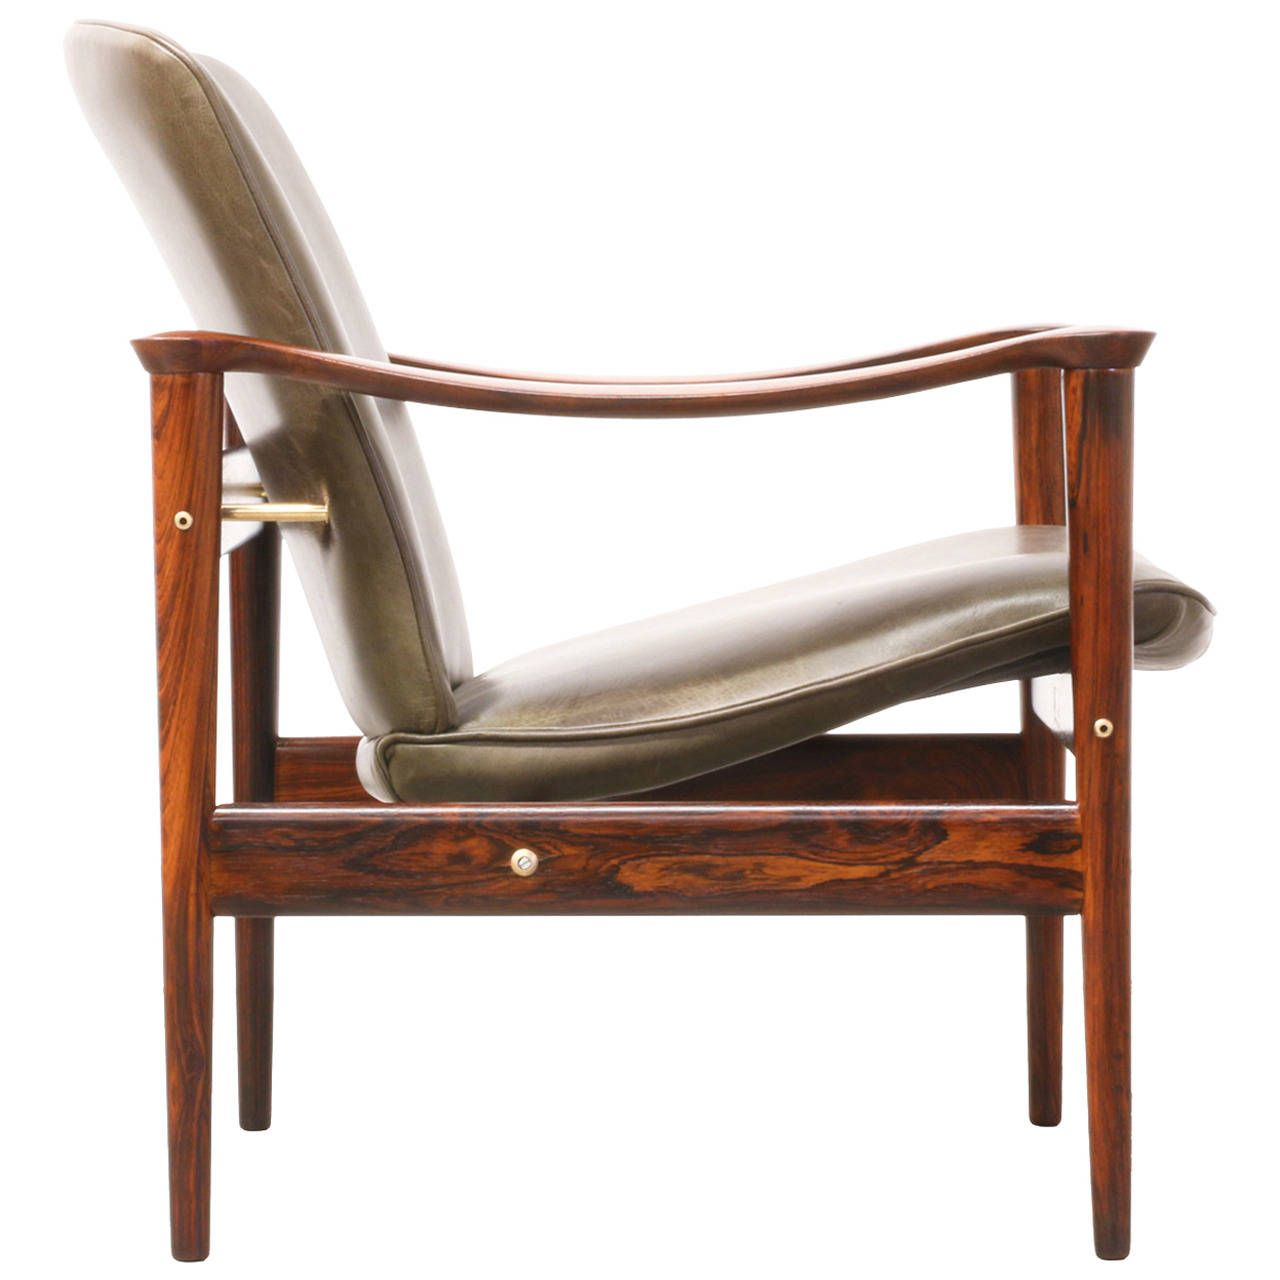 Antique lounge chairs - Fredrik Kayser Model 711 Rosewood Lounge Chair For Vatne Lenestolfabrikk